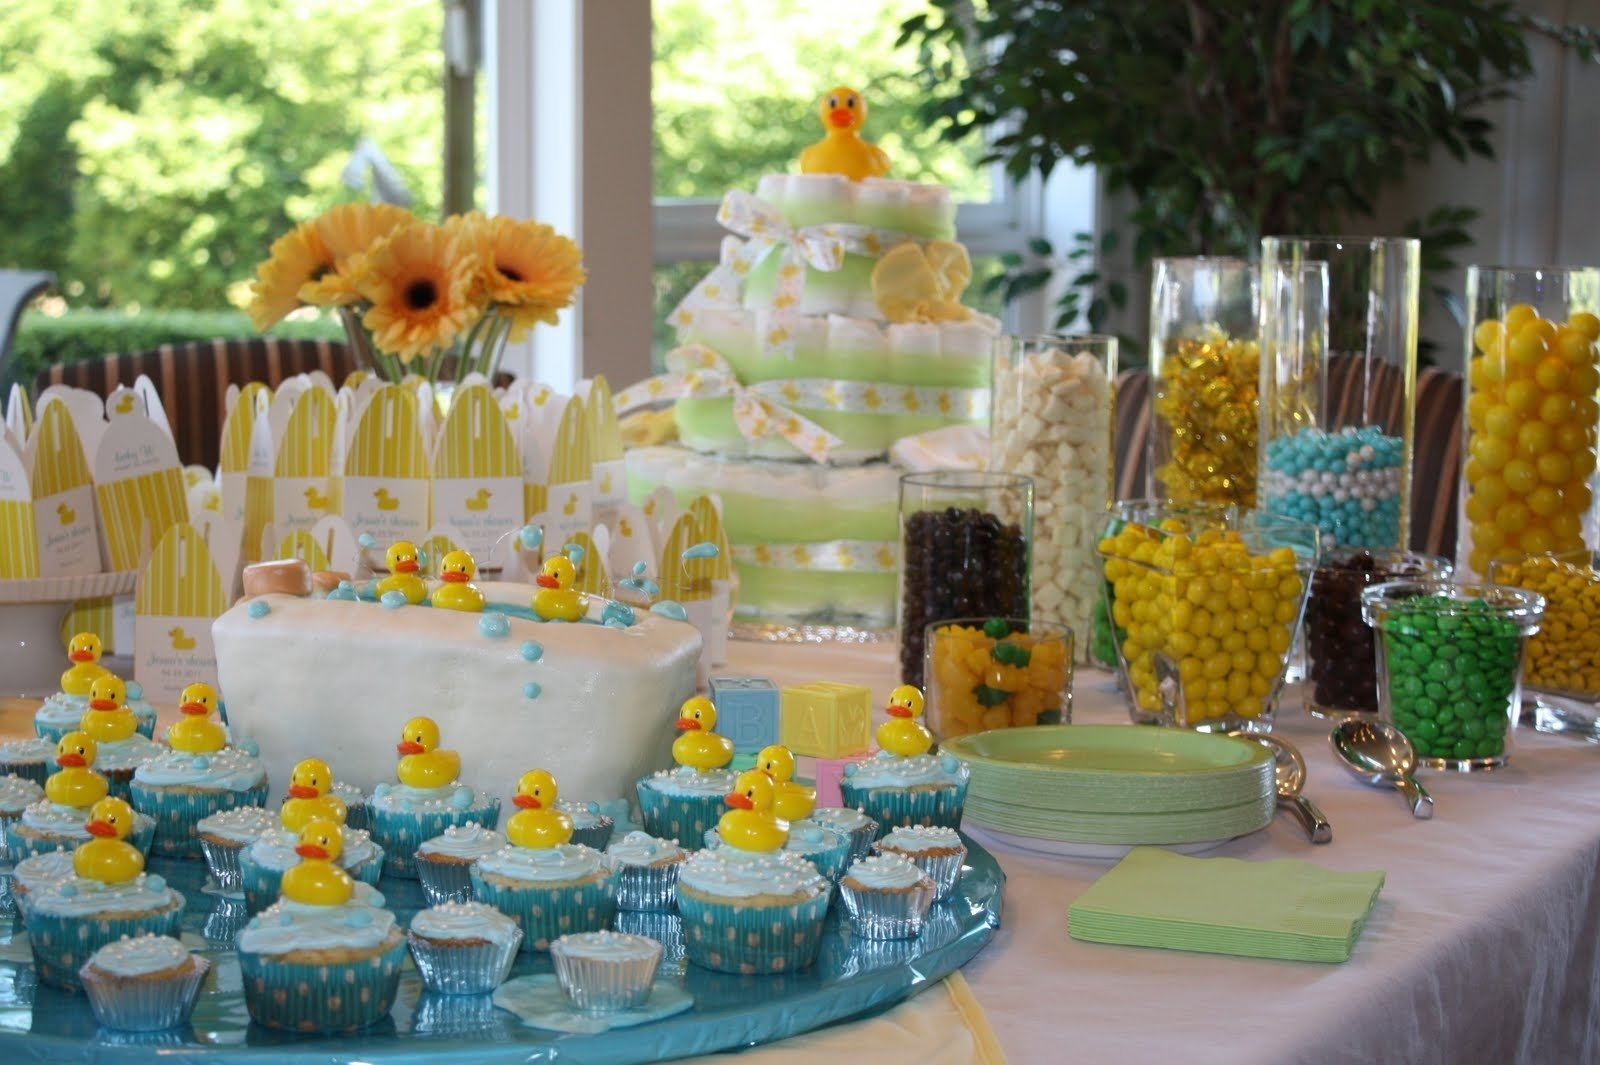 10 Amazing Rubber Duck Baby Shower Ideas rubber duck baby shower ideas omega center ideas for baby 2021